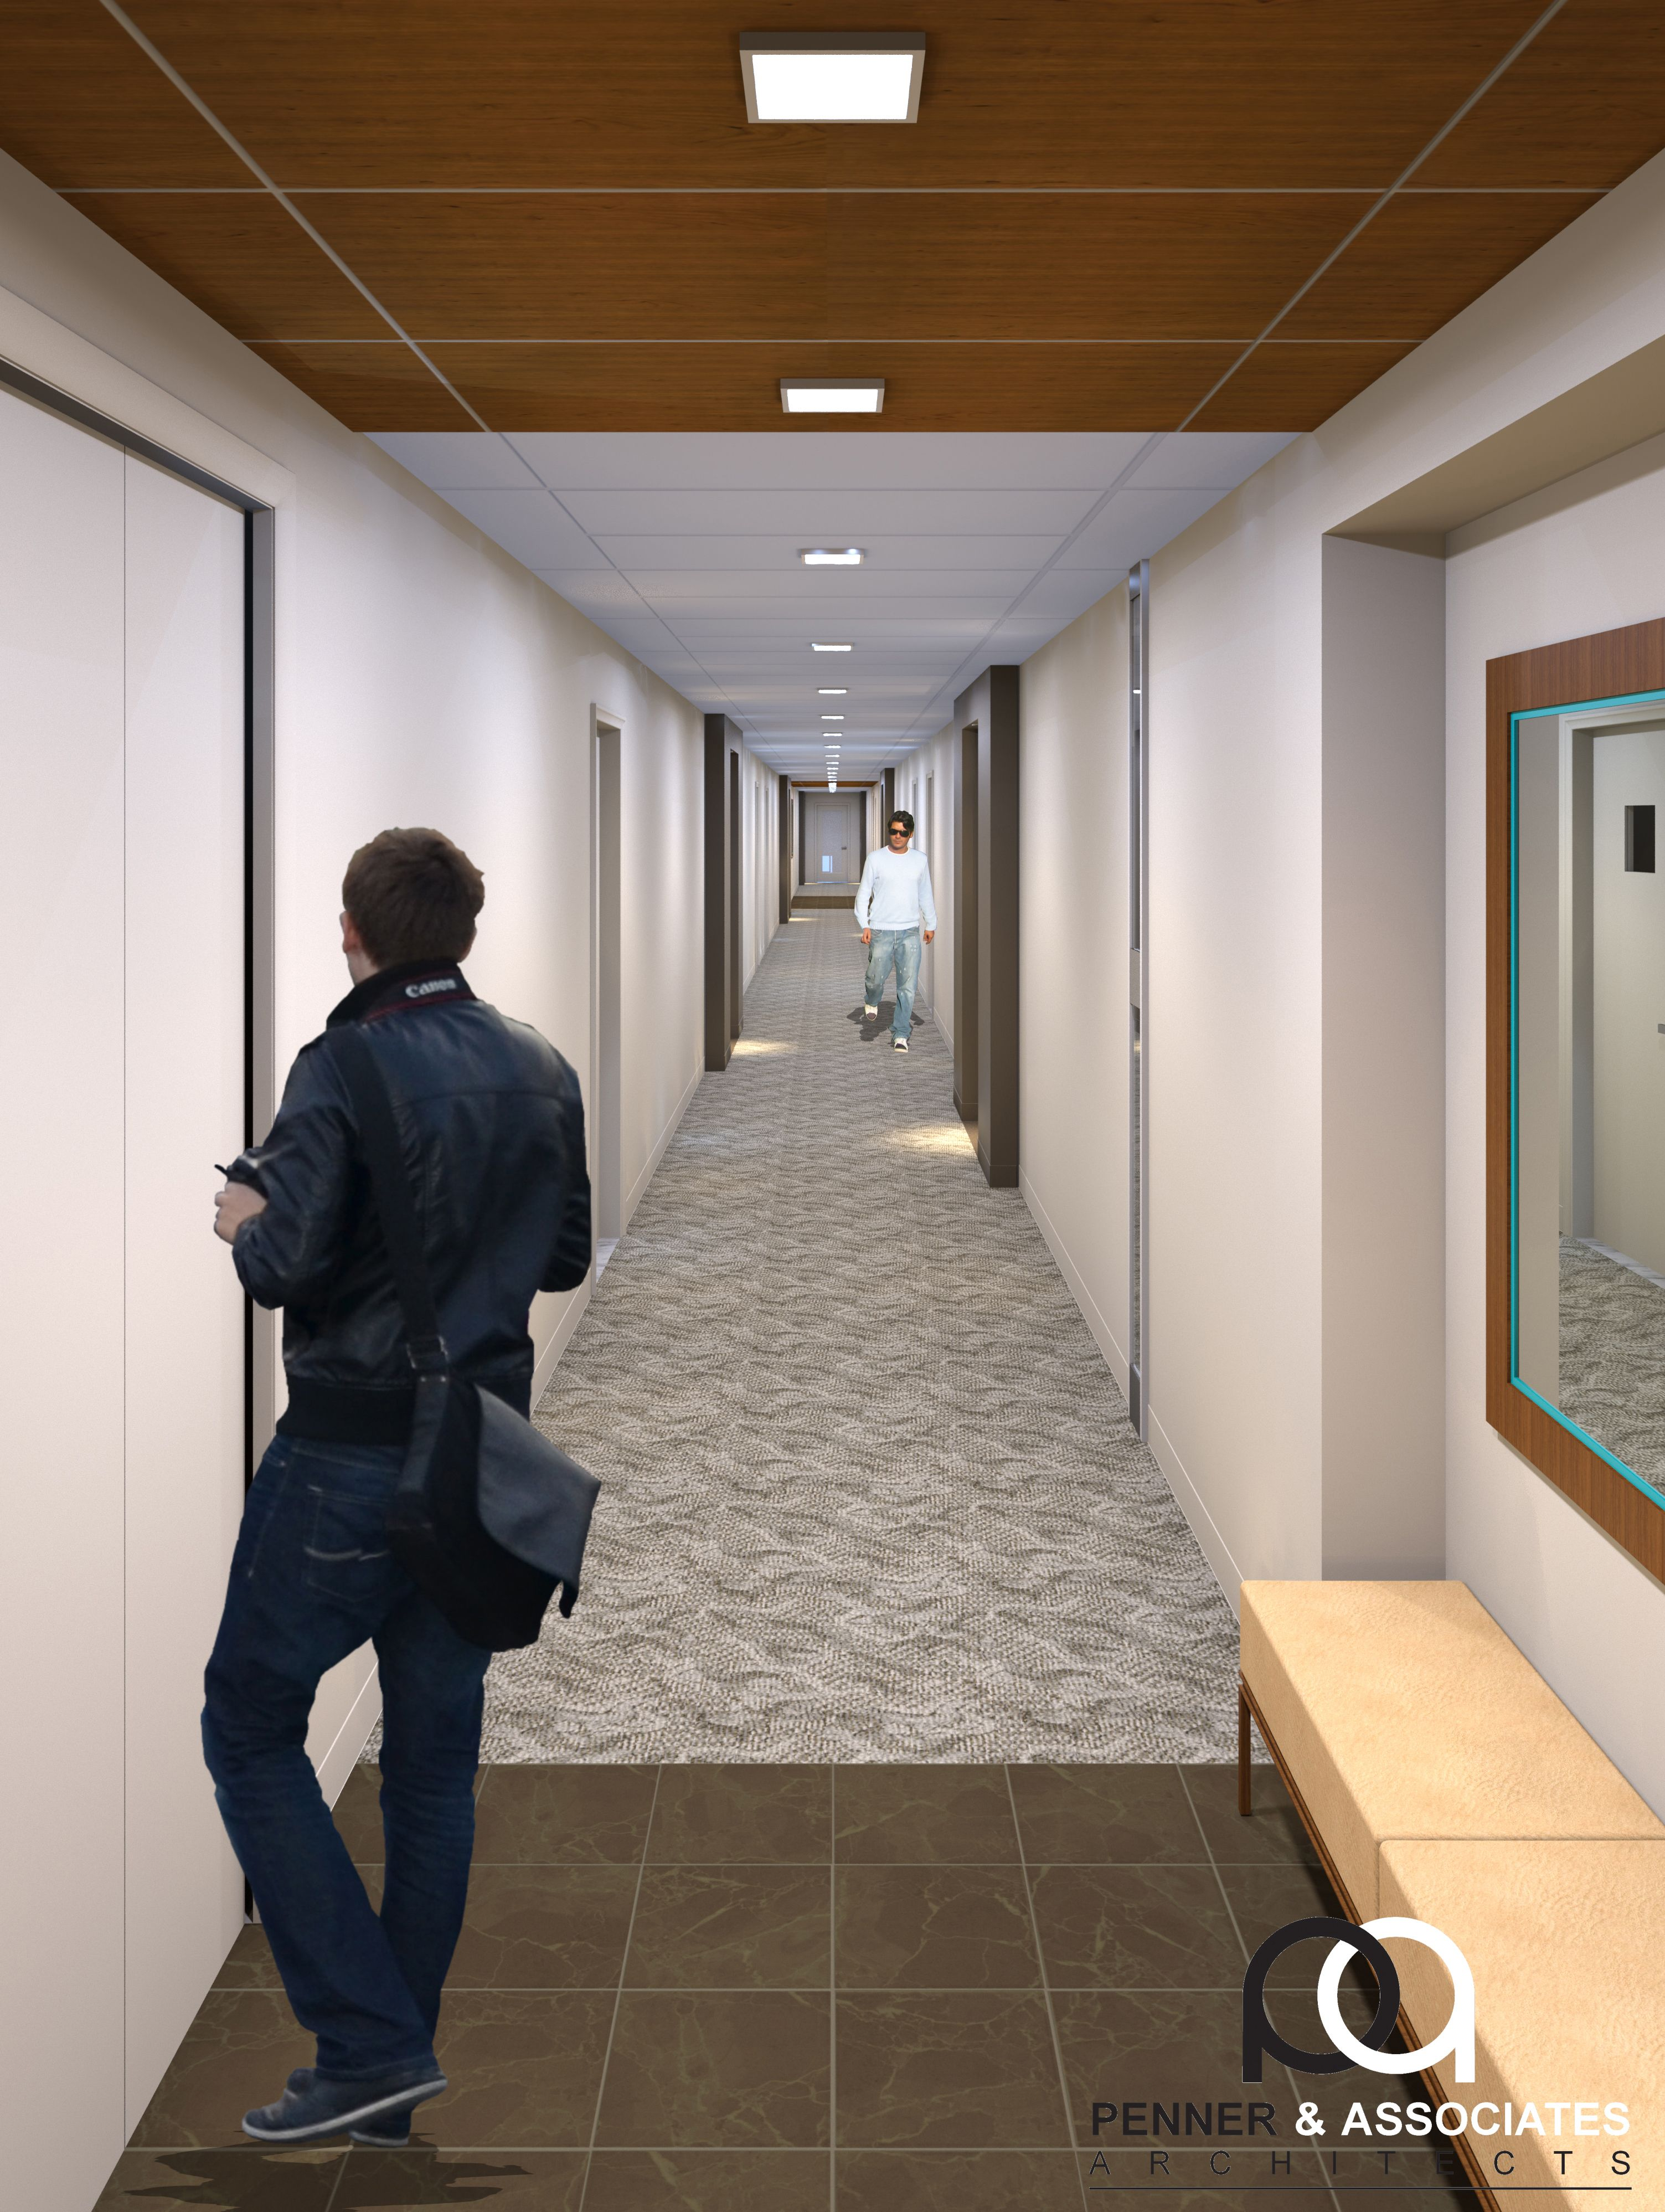 This Project Aimed To Renovate The Outdated Interior Hallways And Lobbies Of A High End Condominium In Pitts Apartment Building Hallway Designs Corridor Design